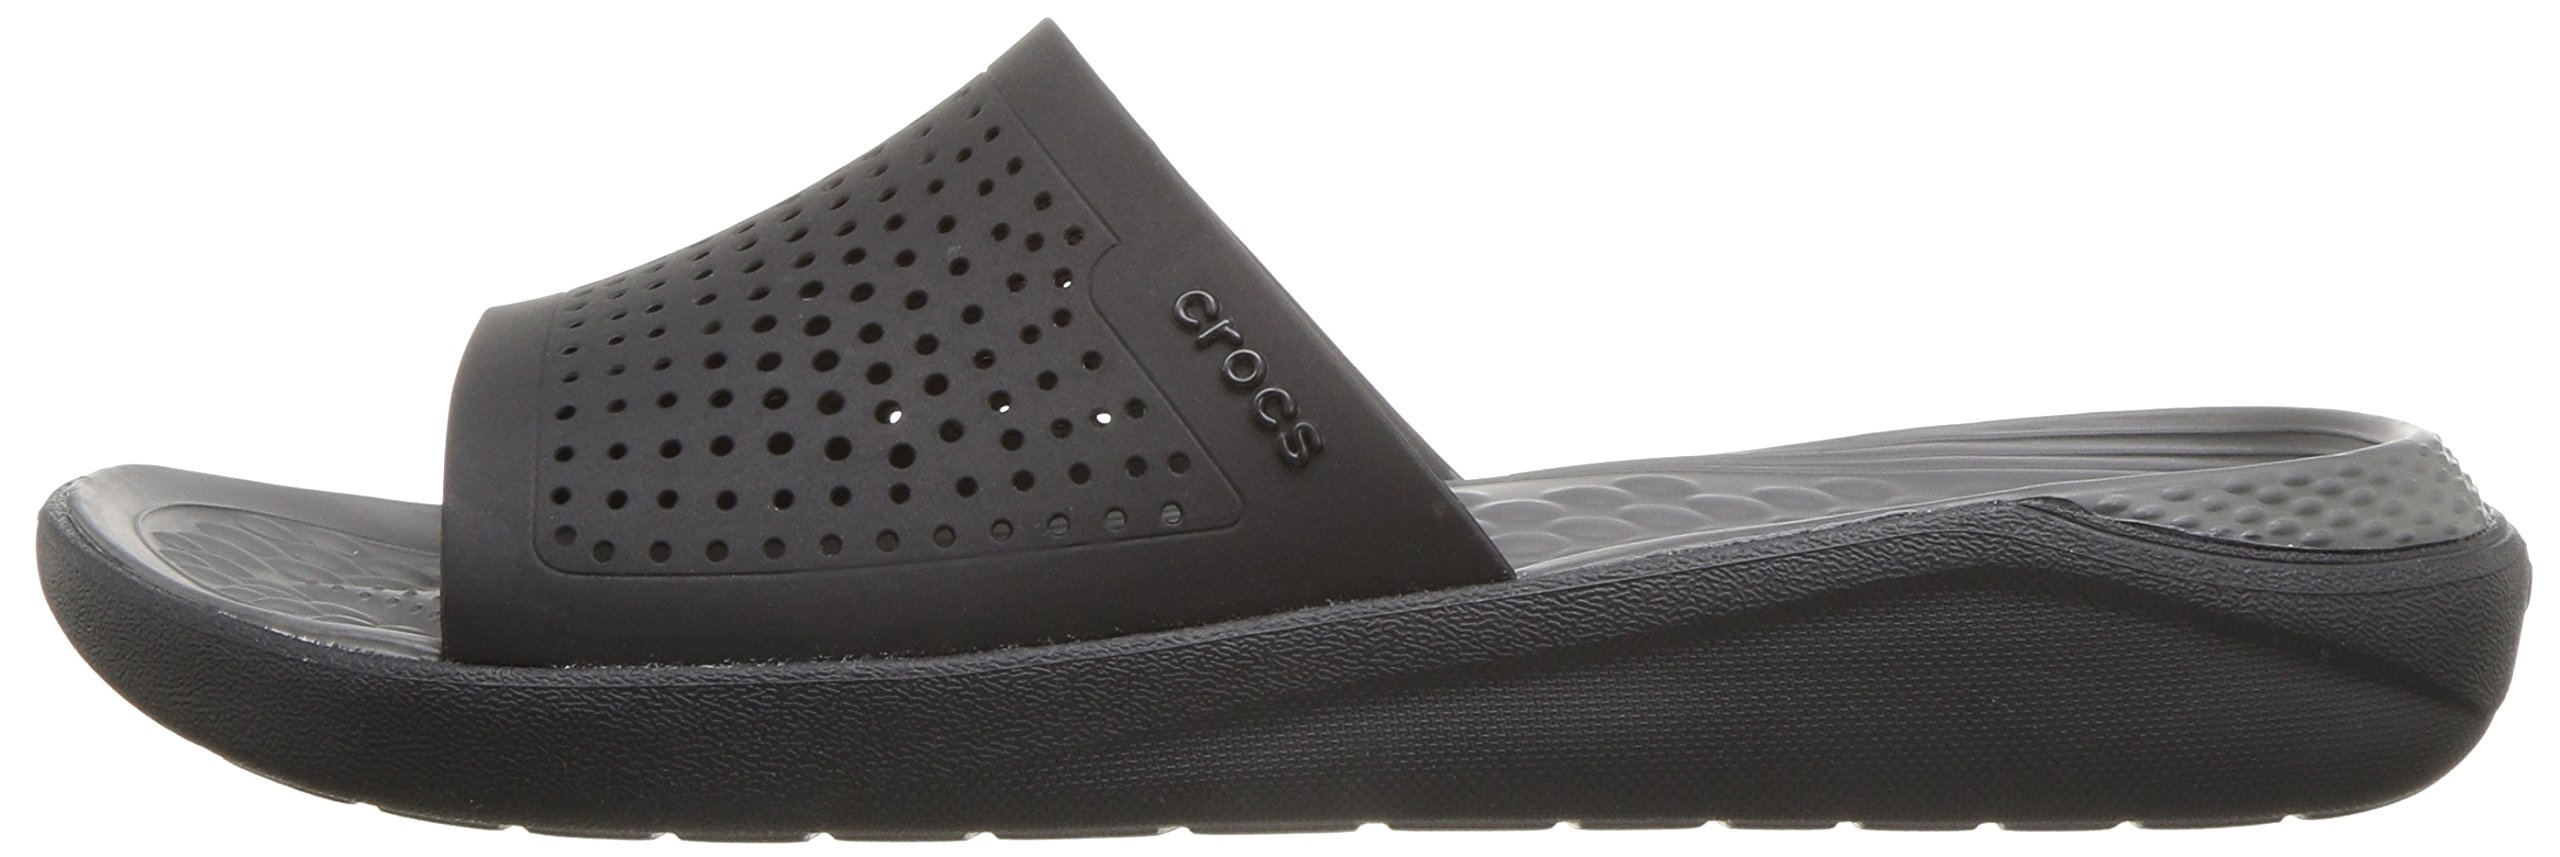 Crocs Unisex-Adults Literide Slide Sandal, Black/Slate Grey, 8 US Men/10 US Women by Crocs (Image #5)